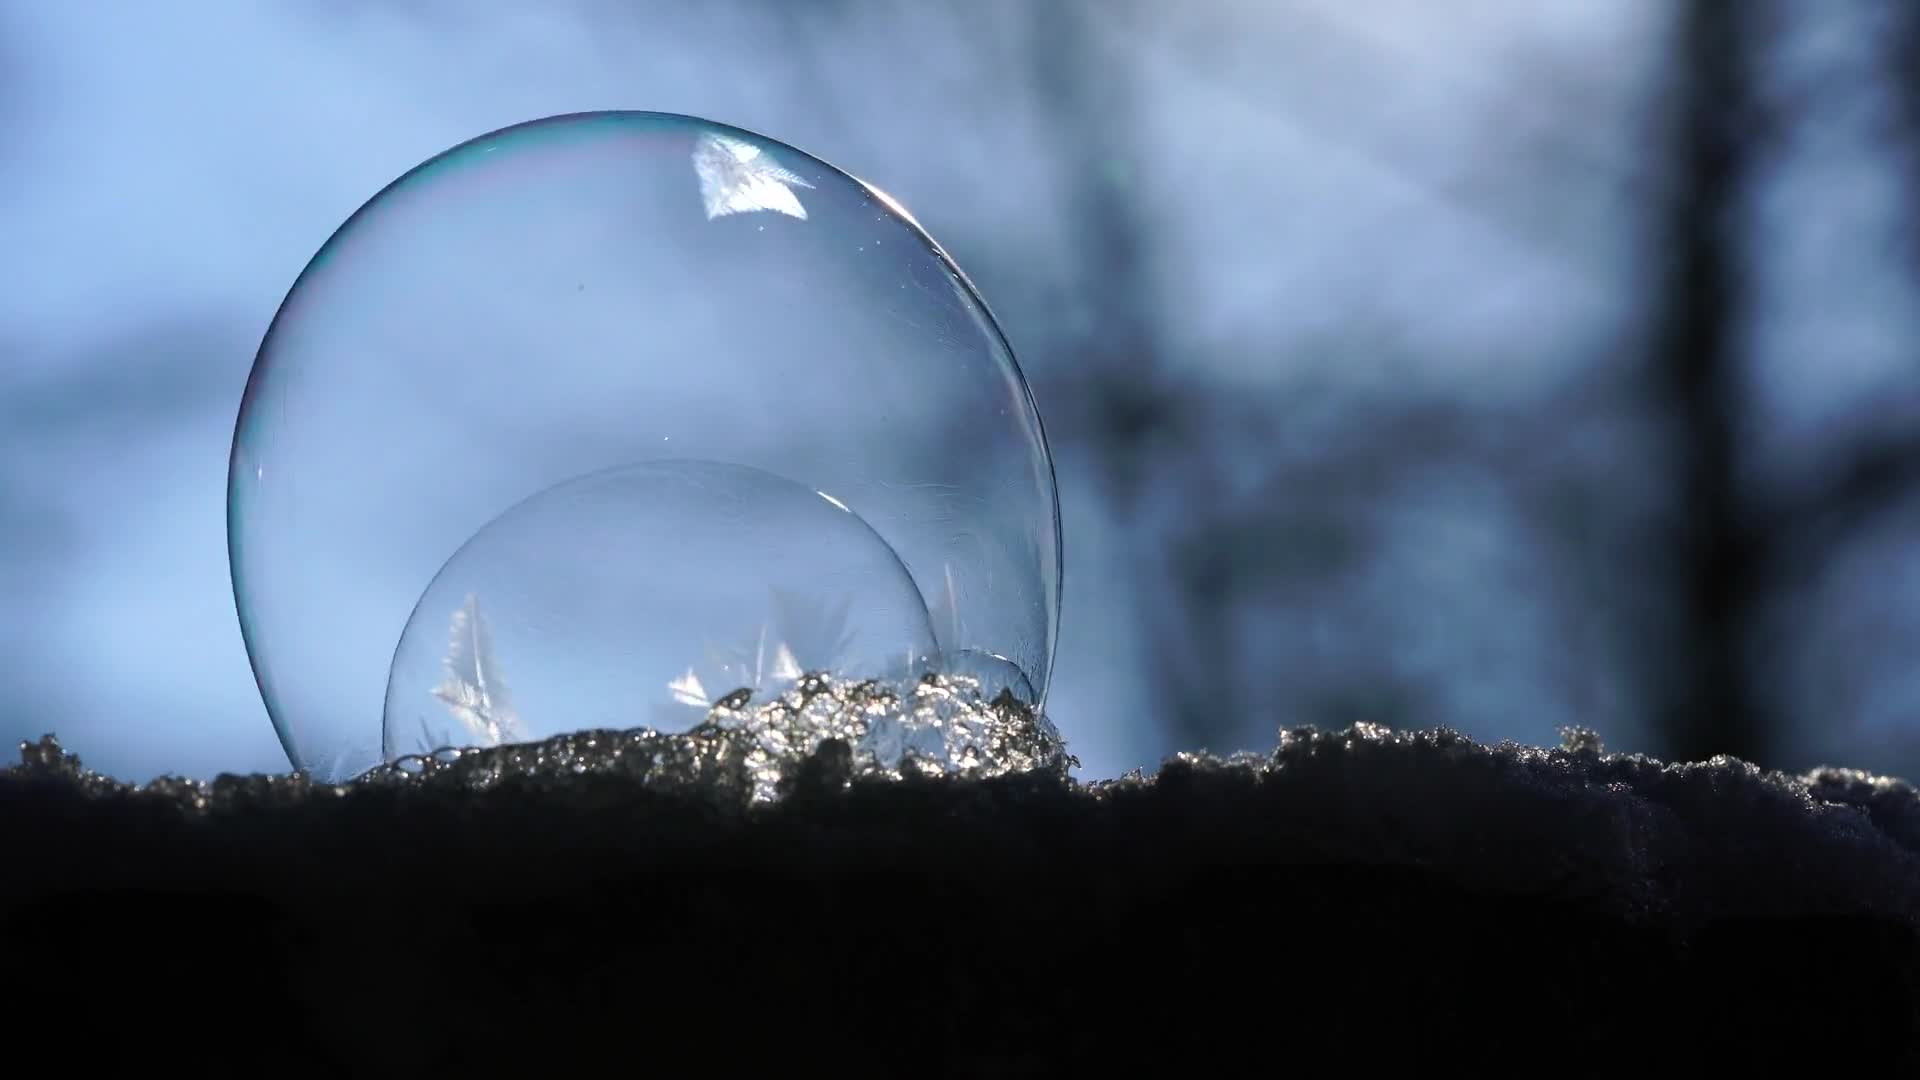 Soap bubble freezer windy crystals eiskristalle